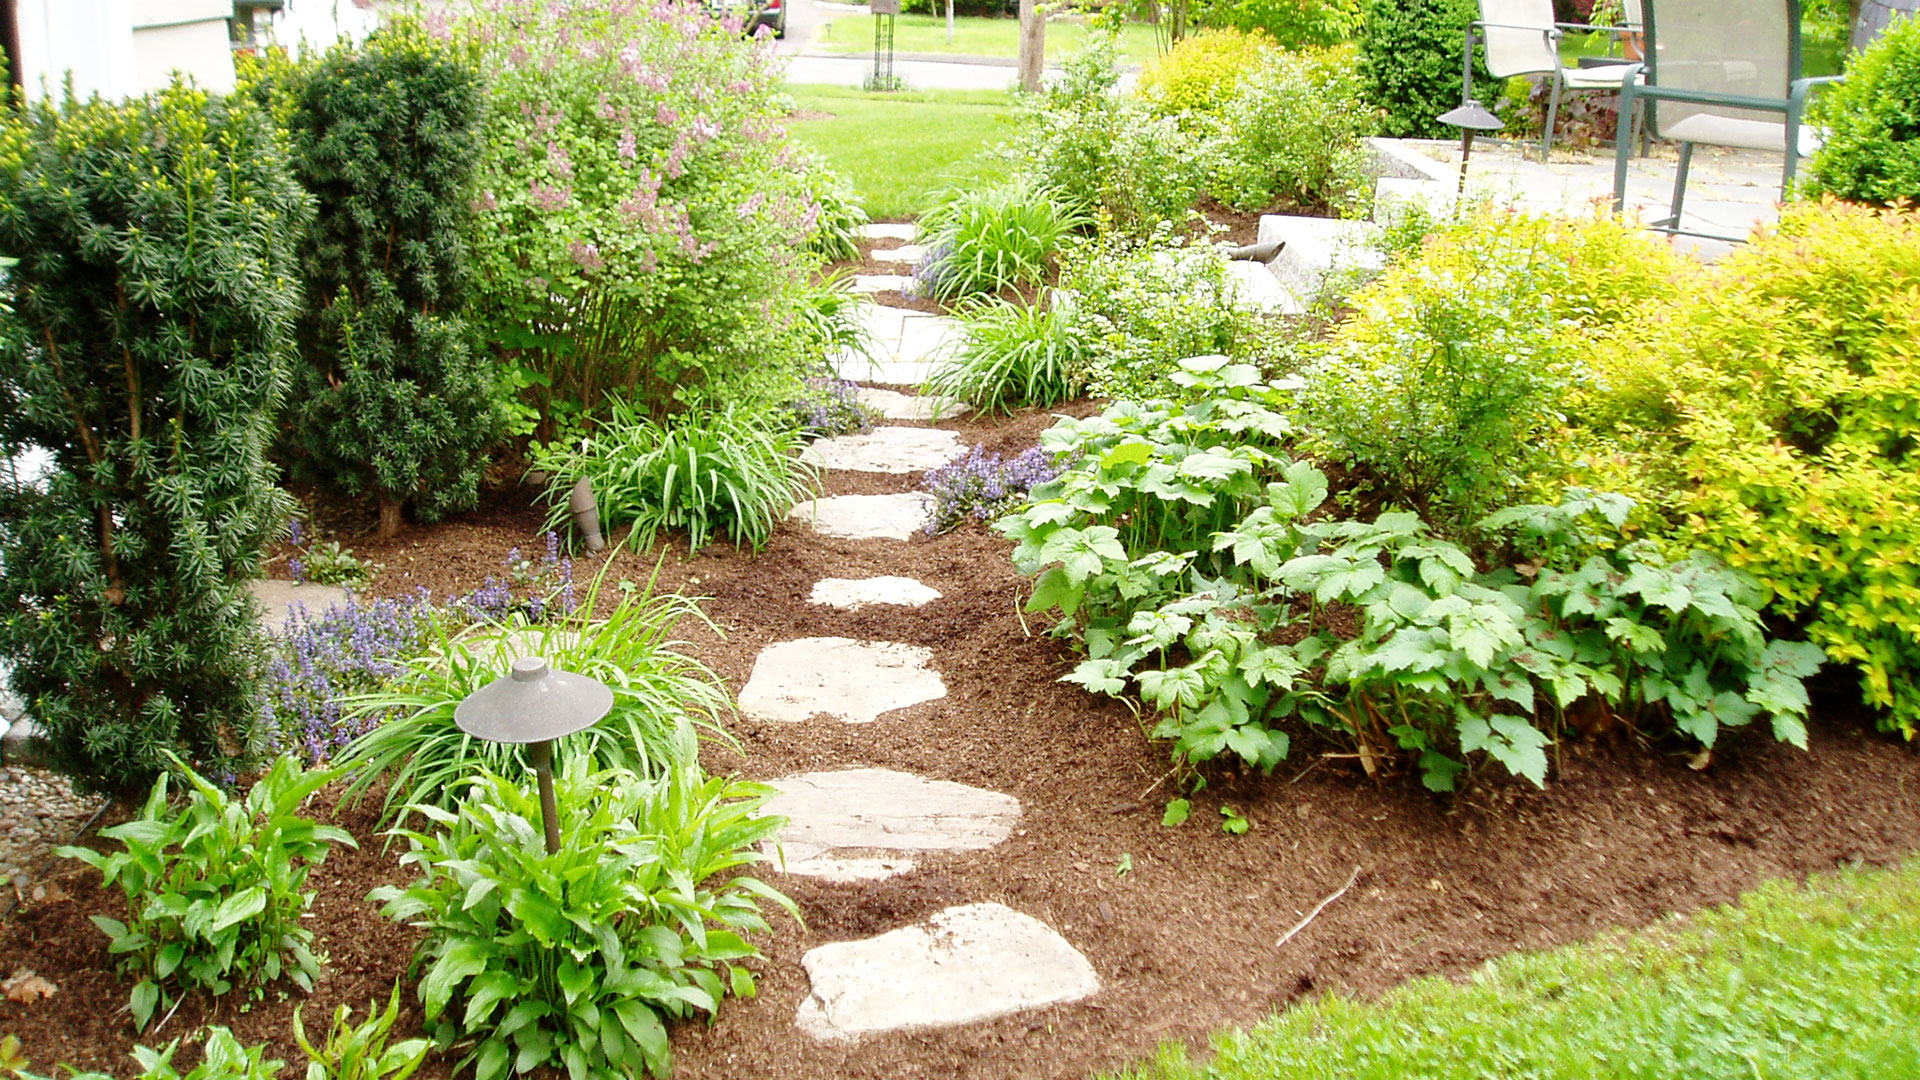 Stepping Stones Through Garden